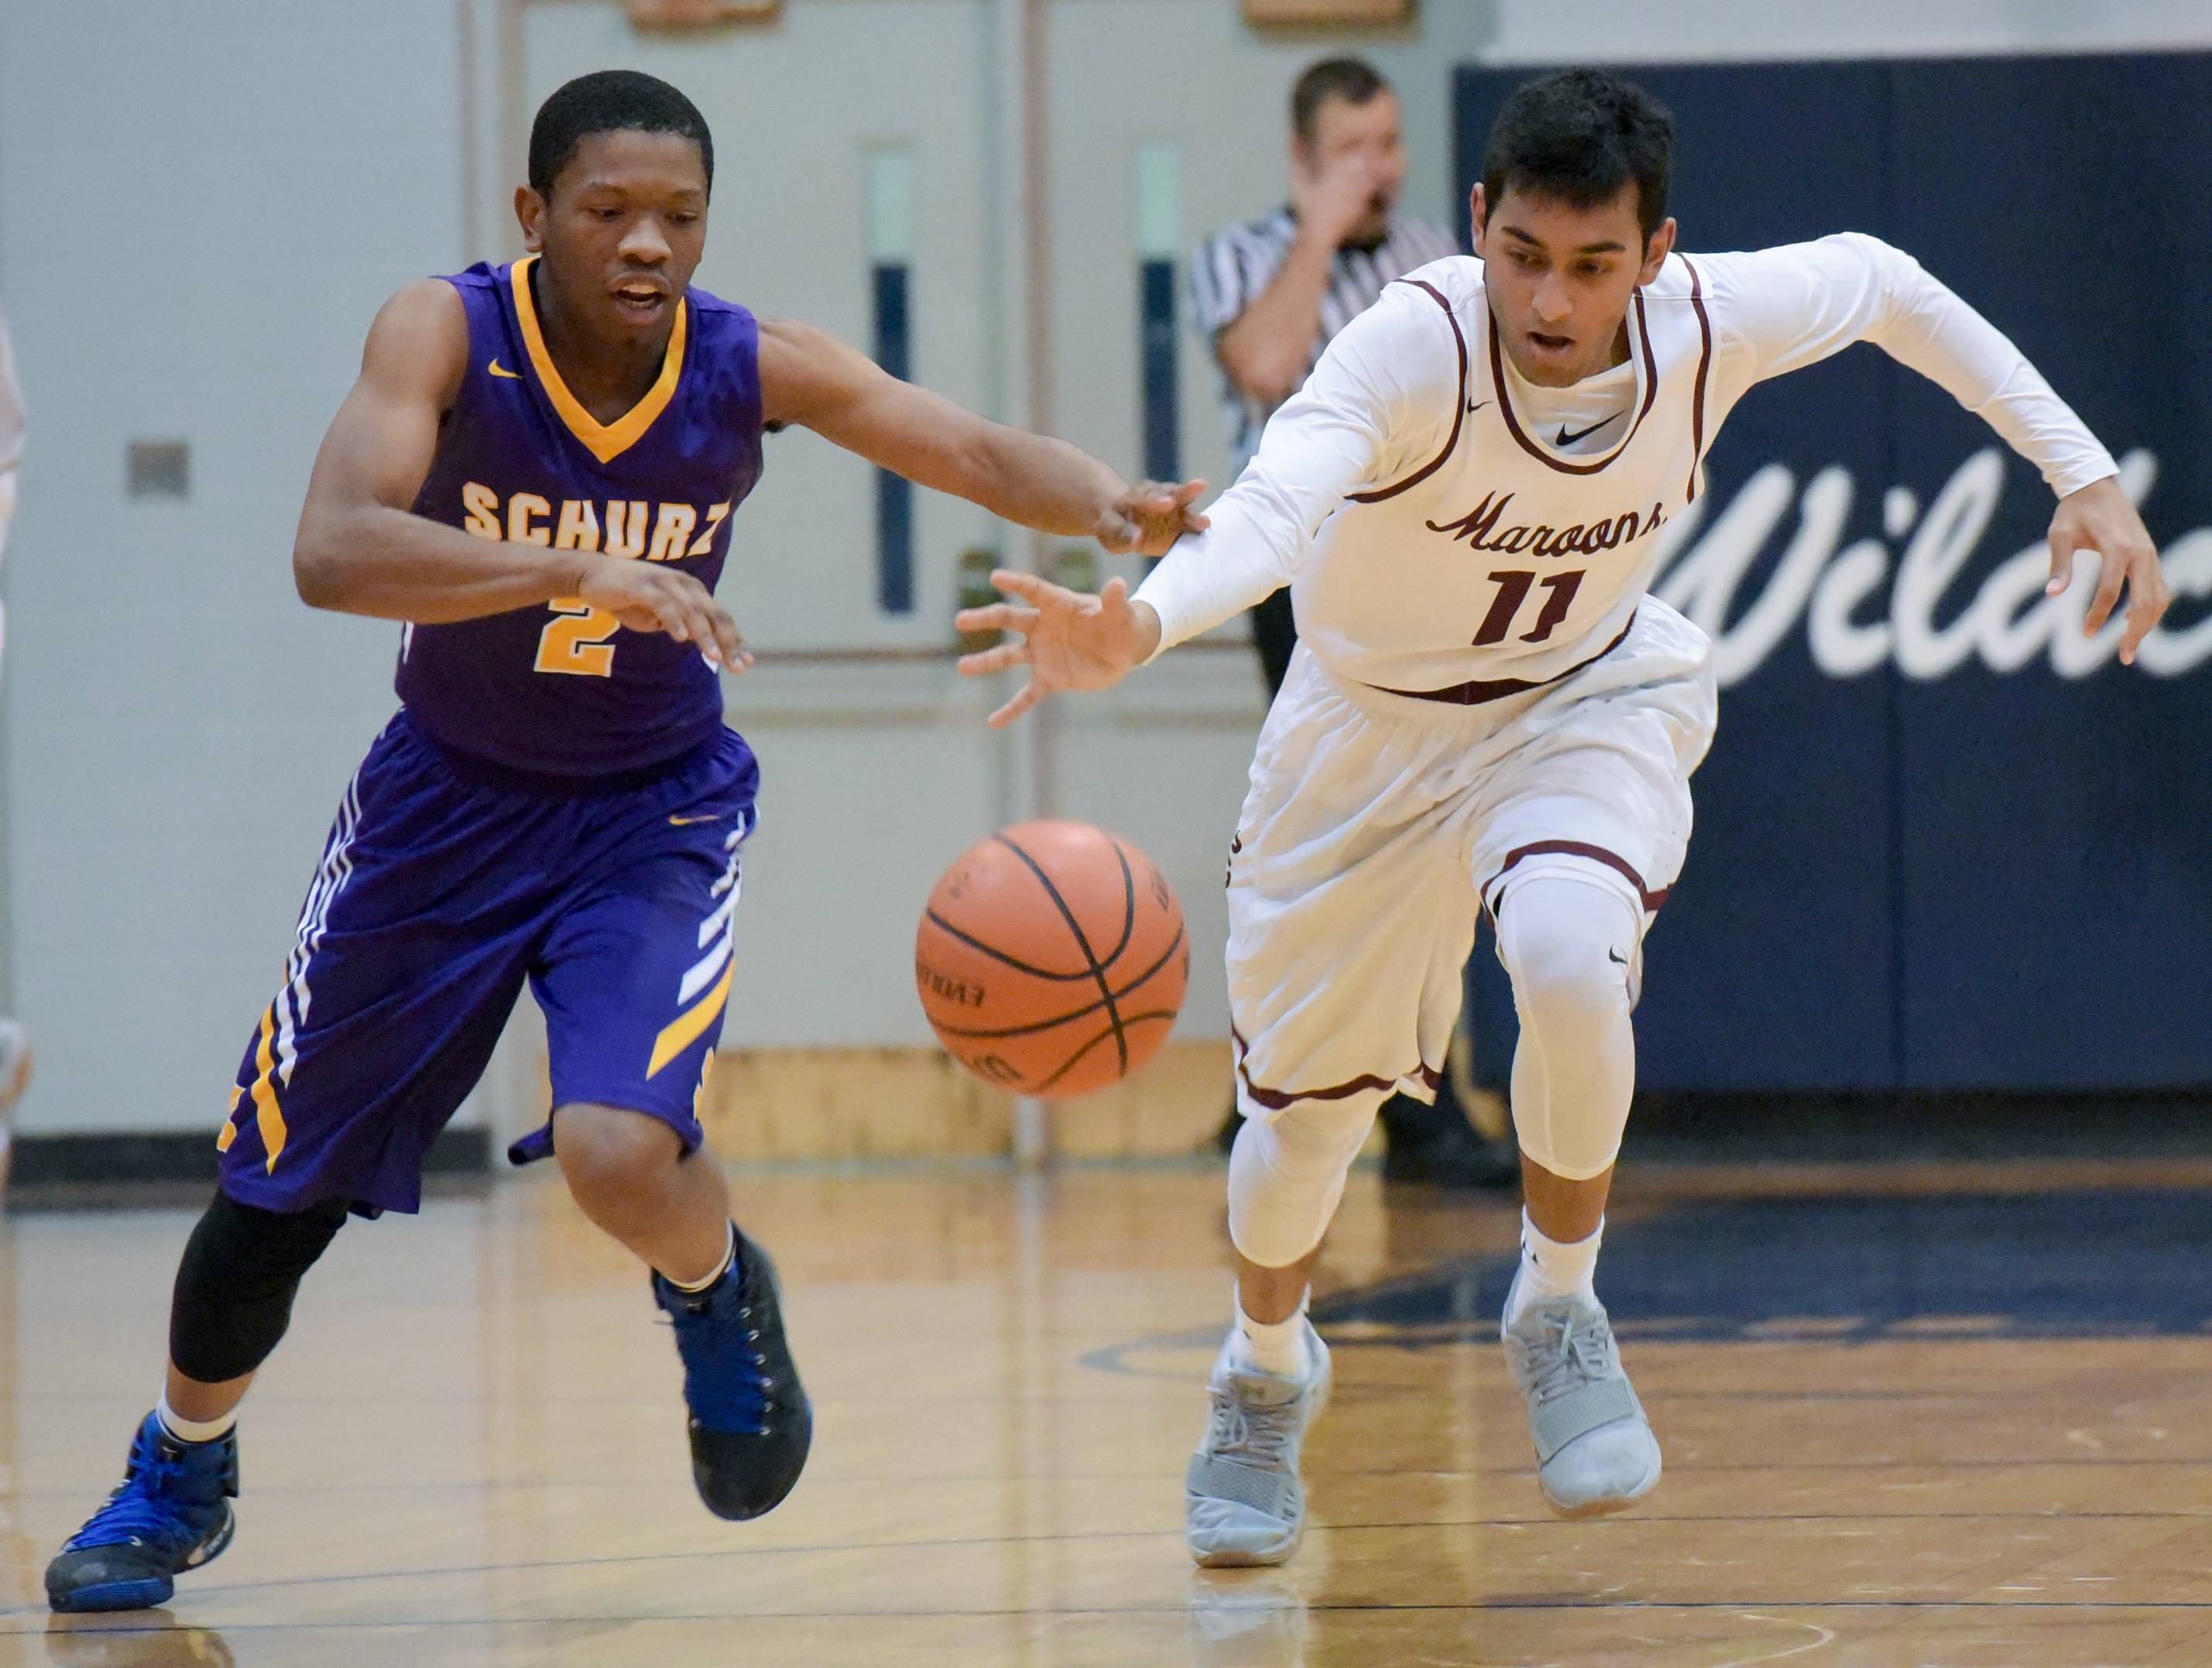 Schurz's Antwon Brooks and Elgin's Dan Toolsie scramble for a loose ball during varsity boys basketball in West Chicago Wednesday.